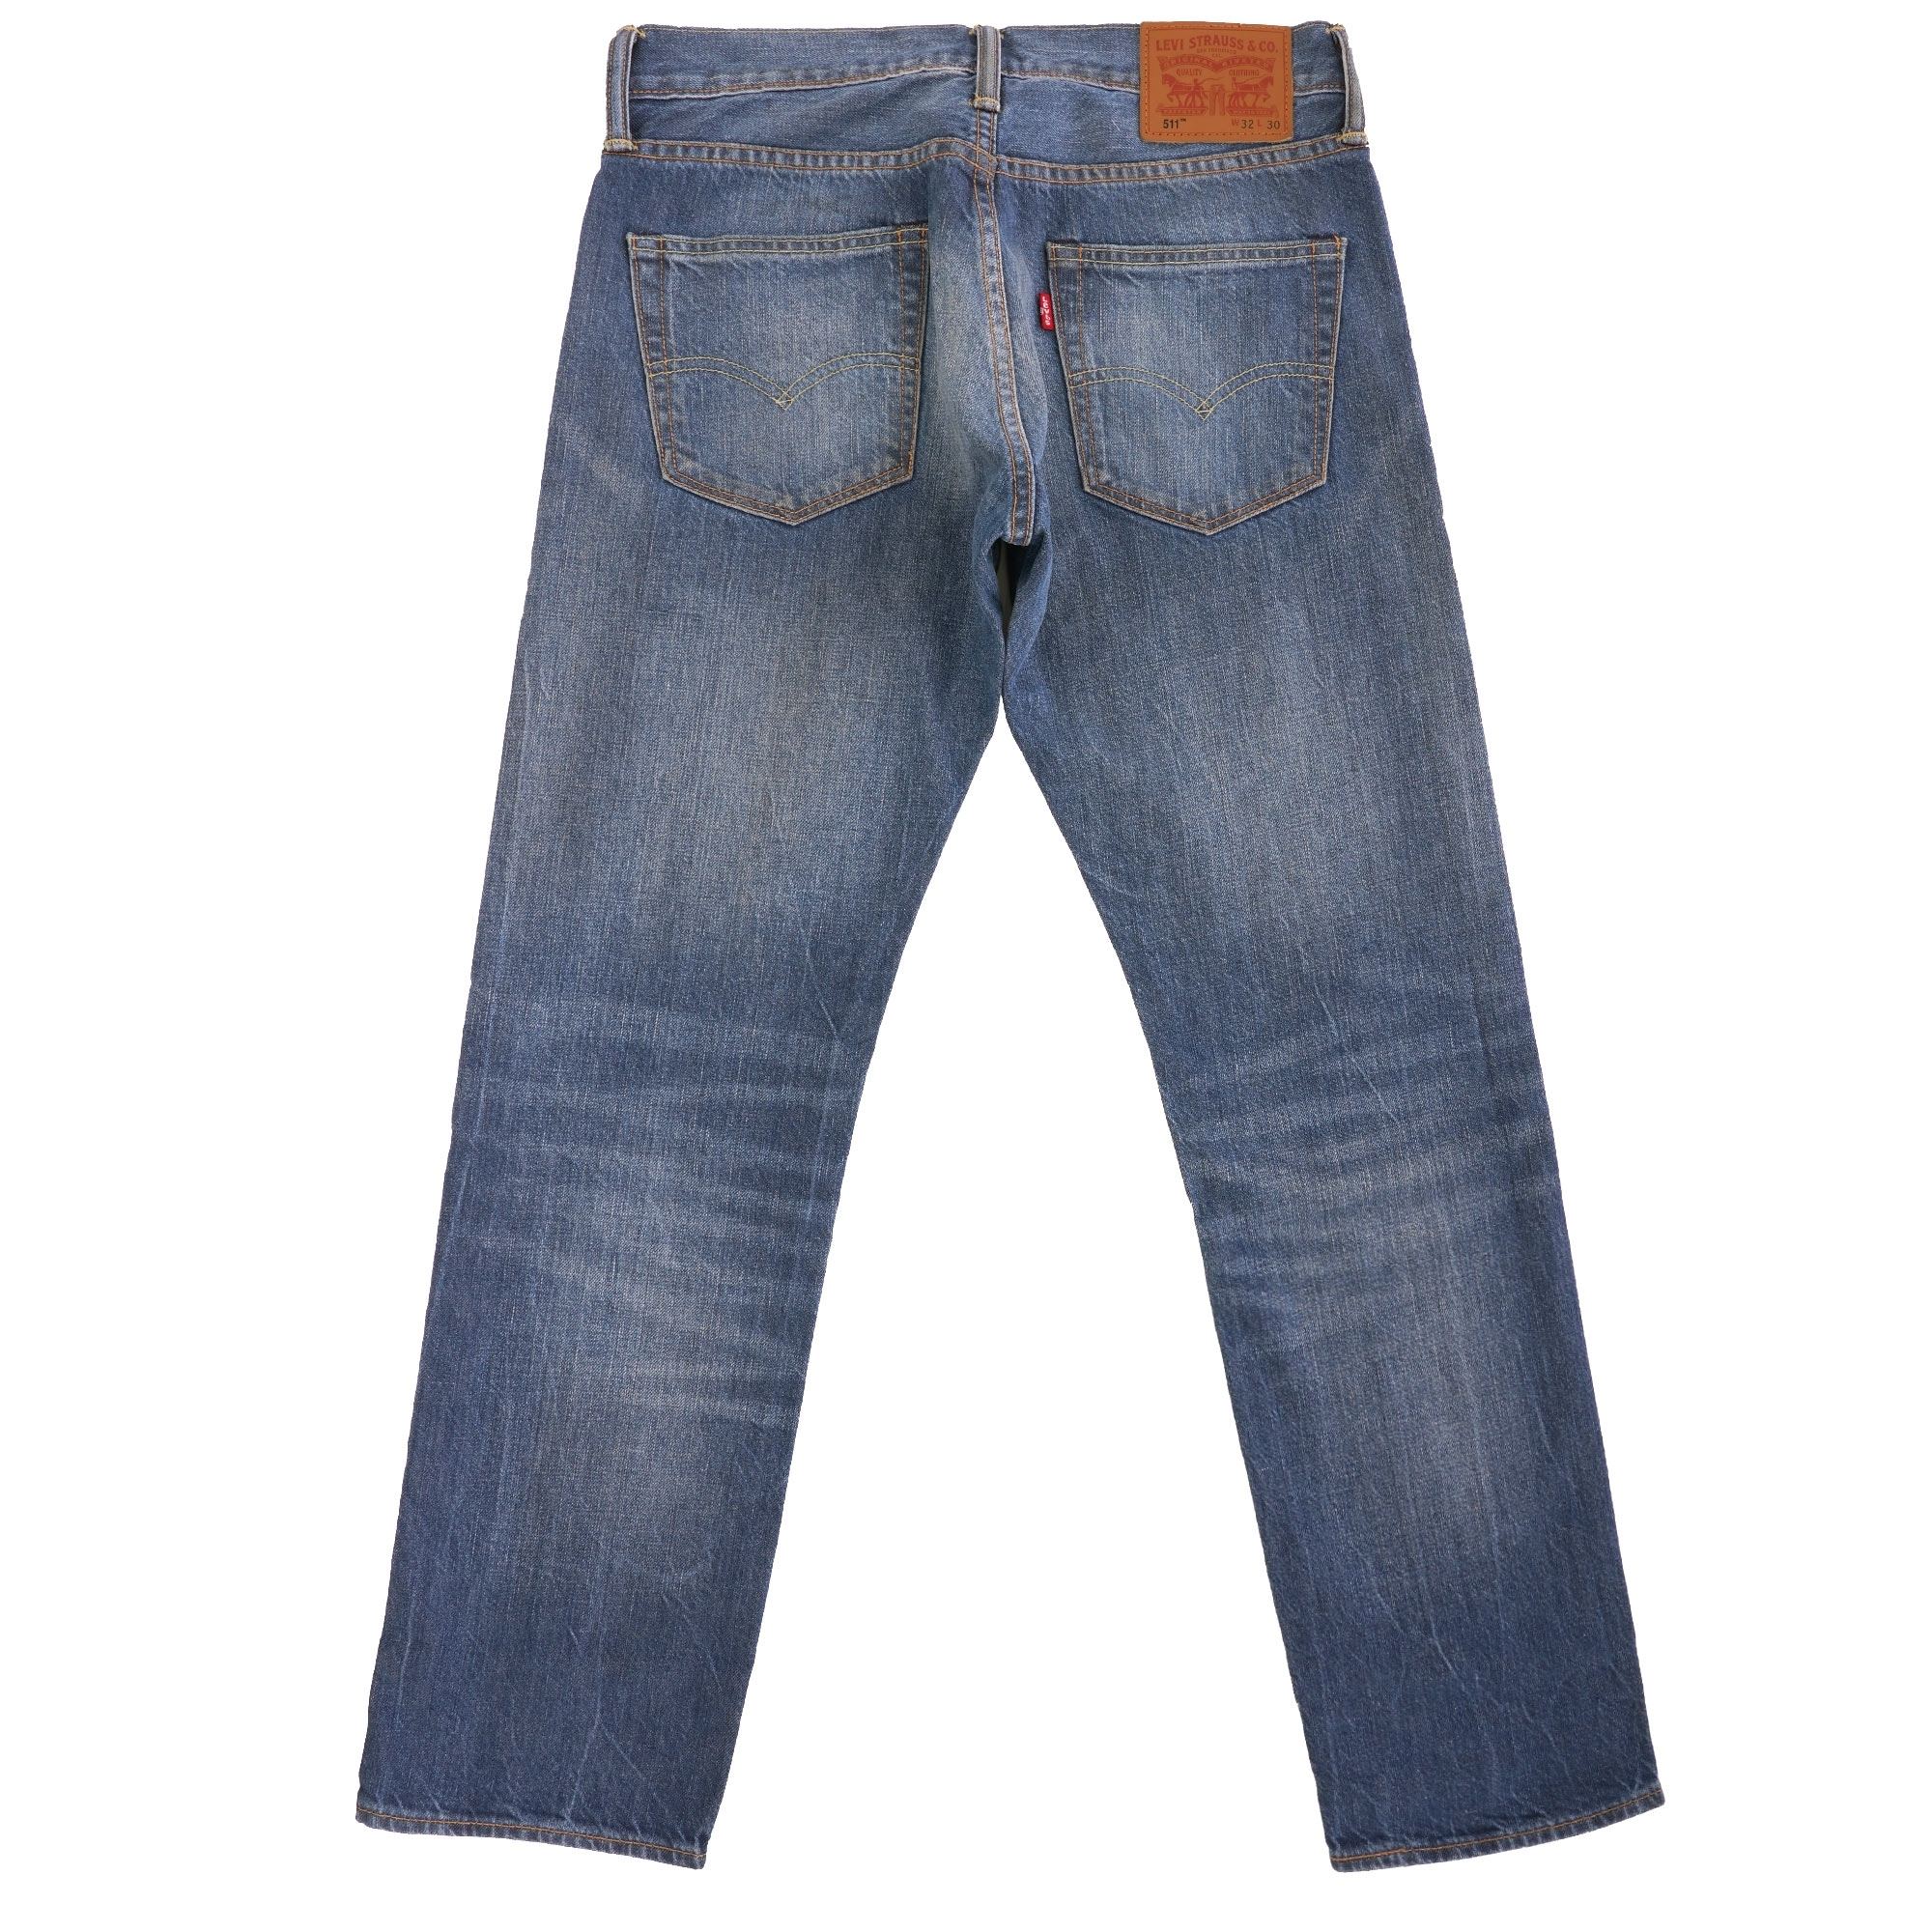 83c2dadd3b4 Levi's 511 Slim Fit Selvedge Jeans | Fender | 04511-2179